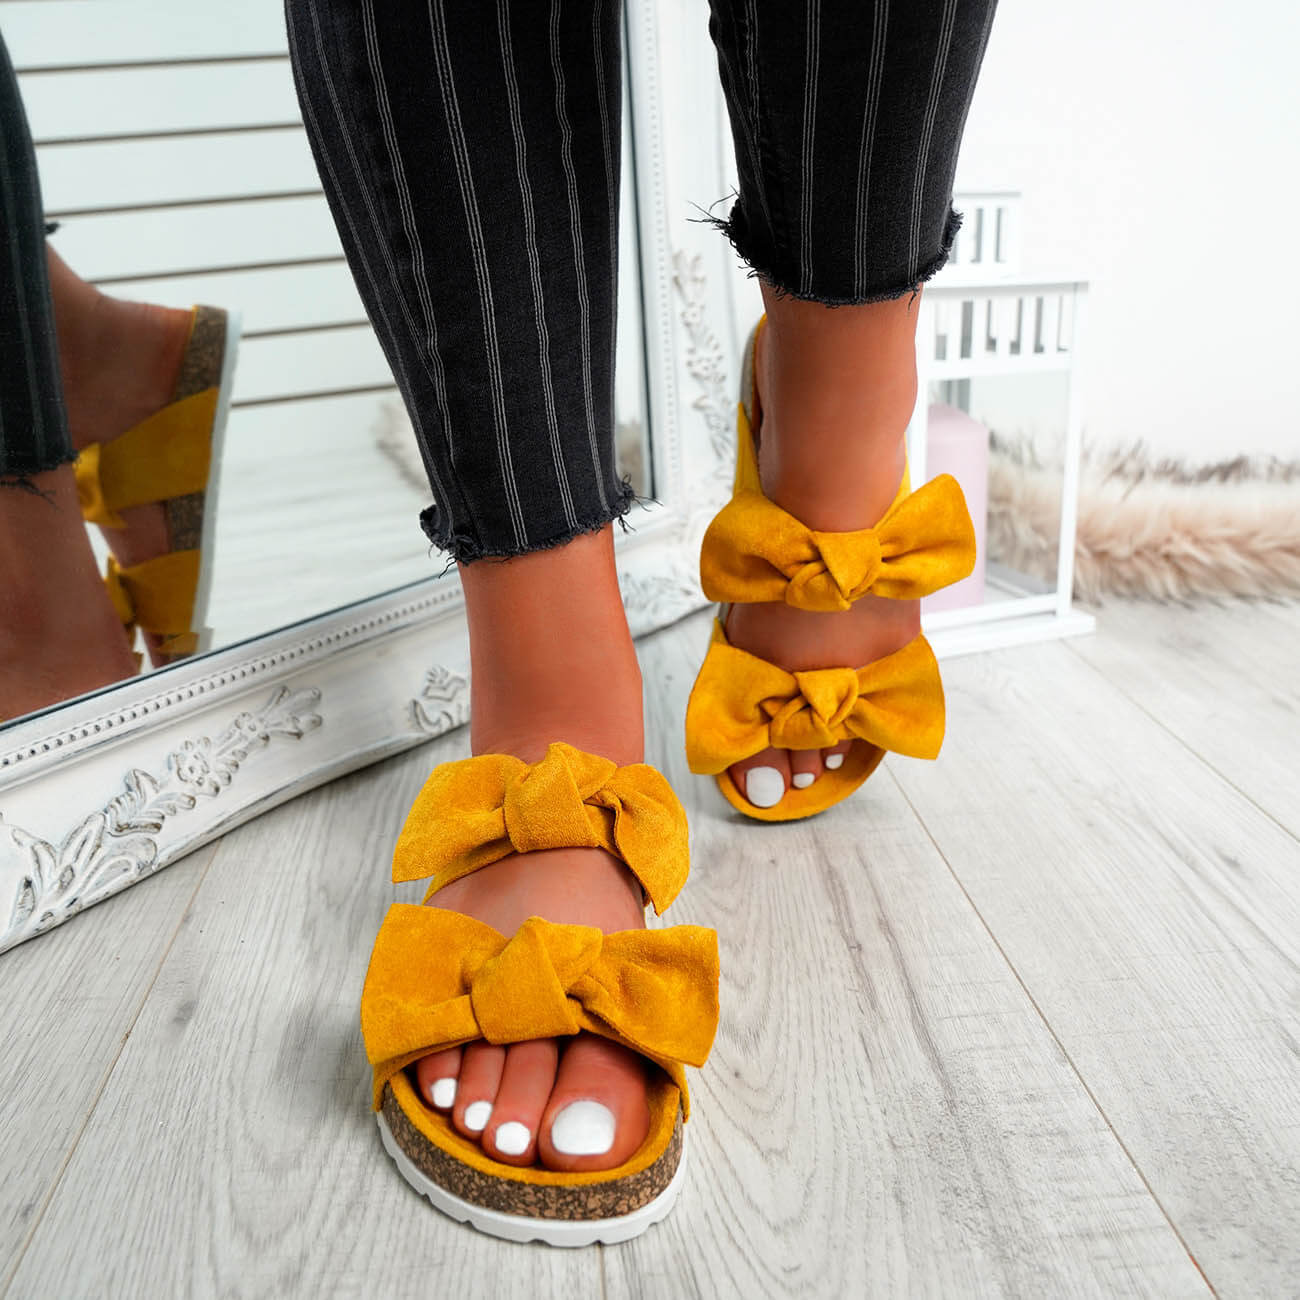 WOMENS-LADIES-PEEP-TOE-SLIP-ON-DOUBLE-BOW-FLAT-SANDALS-PARTY-CLUB-SUMMER-SHOES thumbnail 50